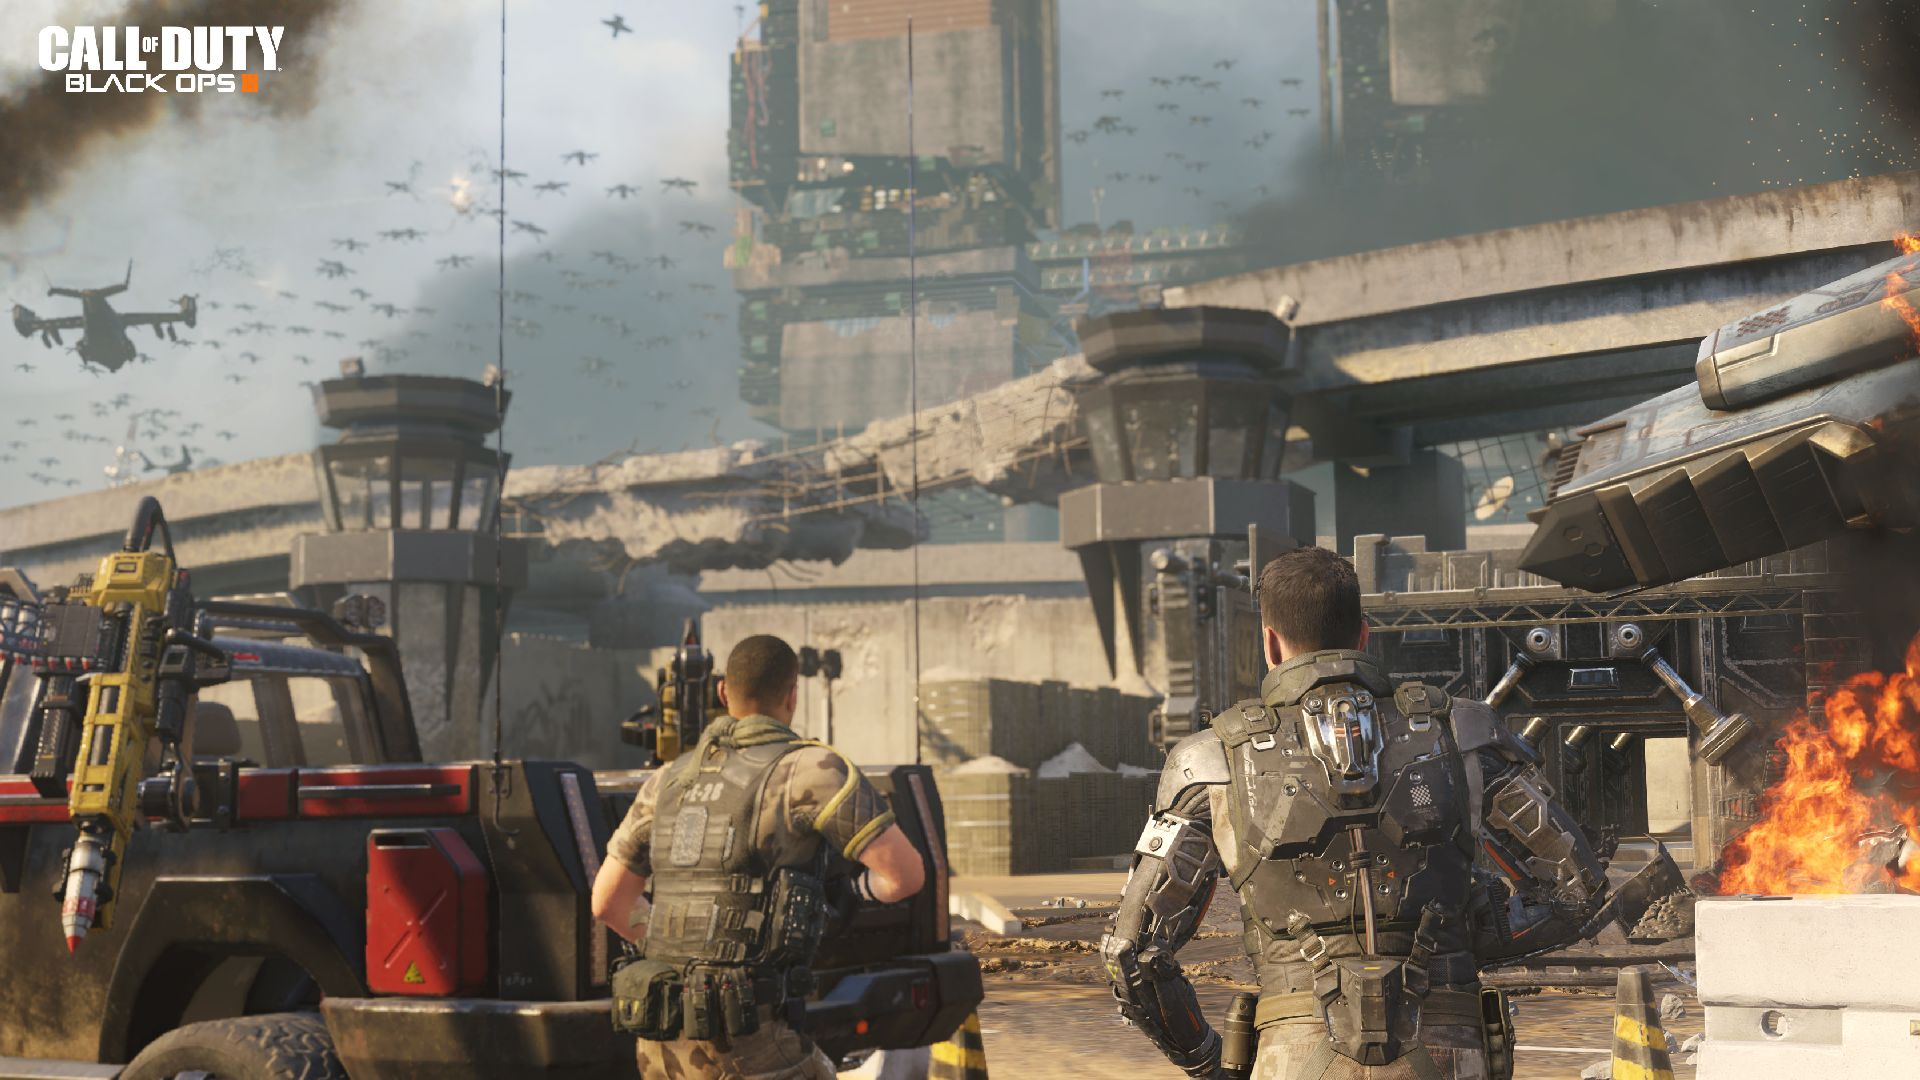 Last-Gen Black Ops 3 Ships Sans Campaign, Weapon Paint Shop and eSports Tools